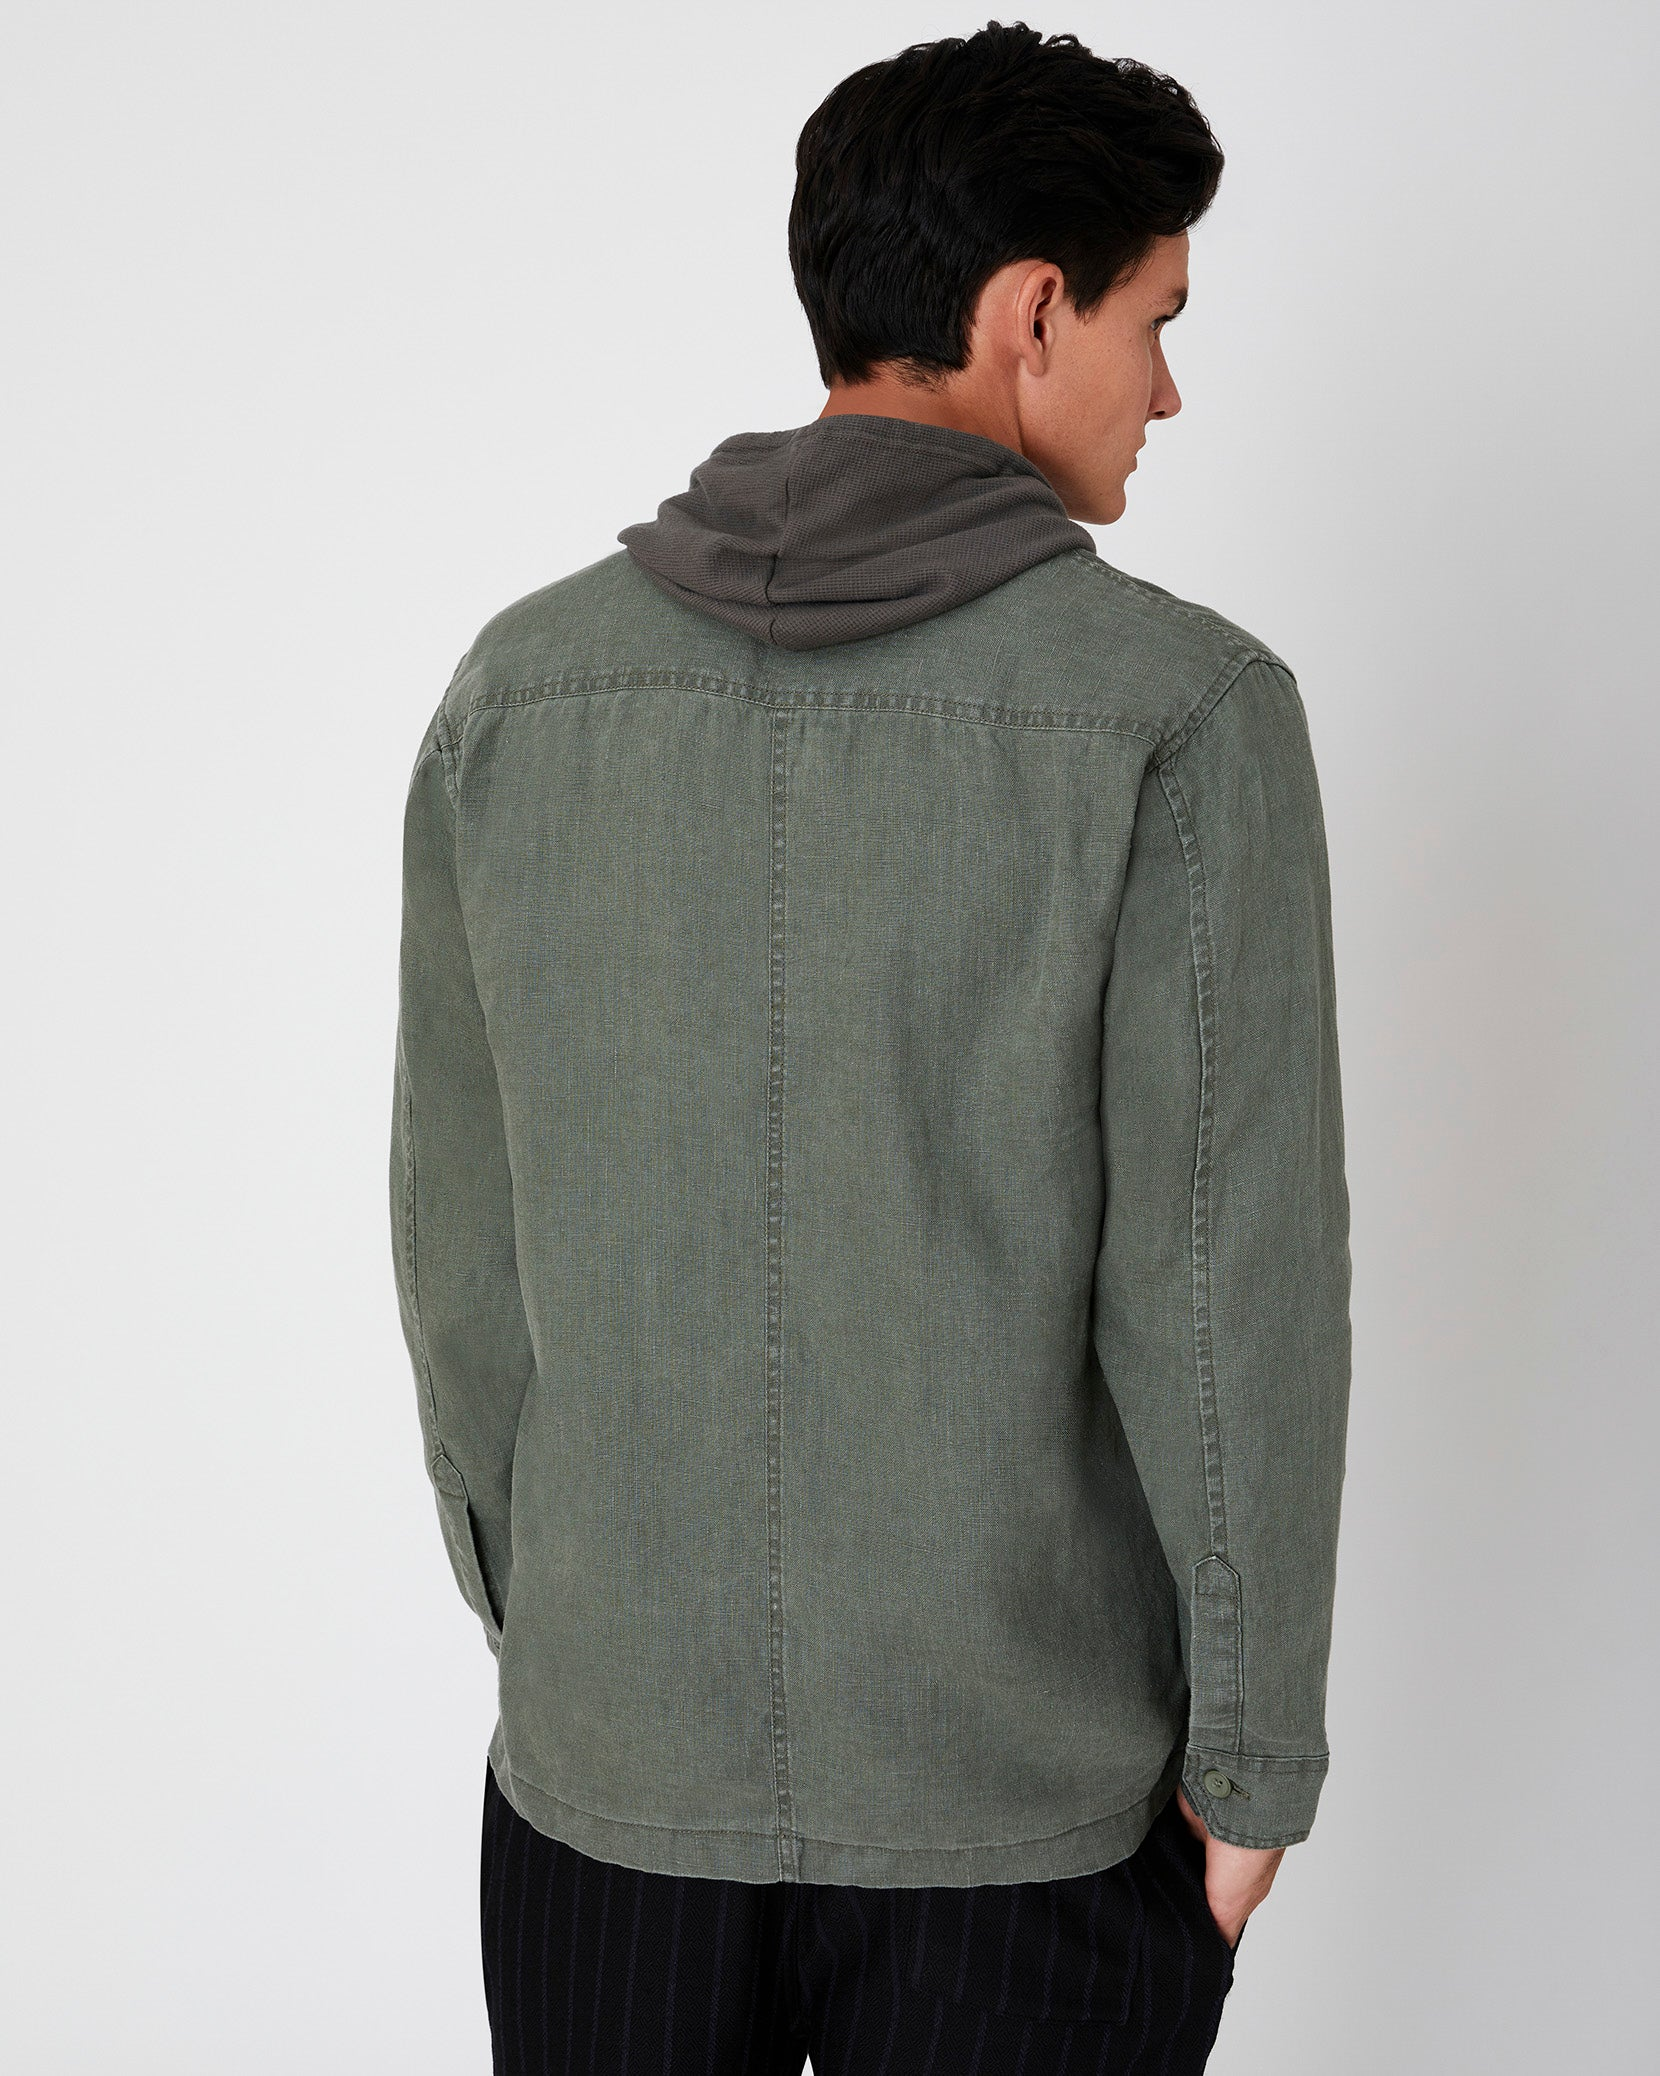 Linen Safari Jacket in Deep Sage - 7 - Onia